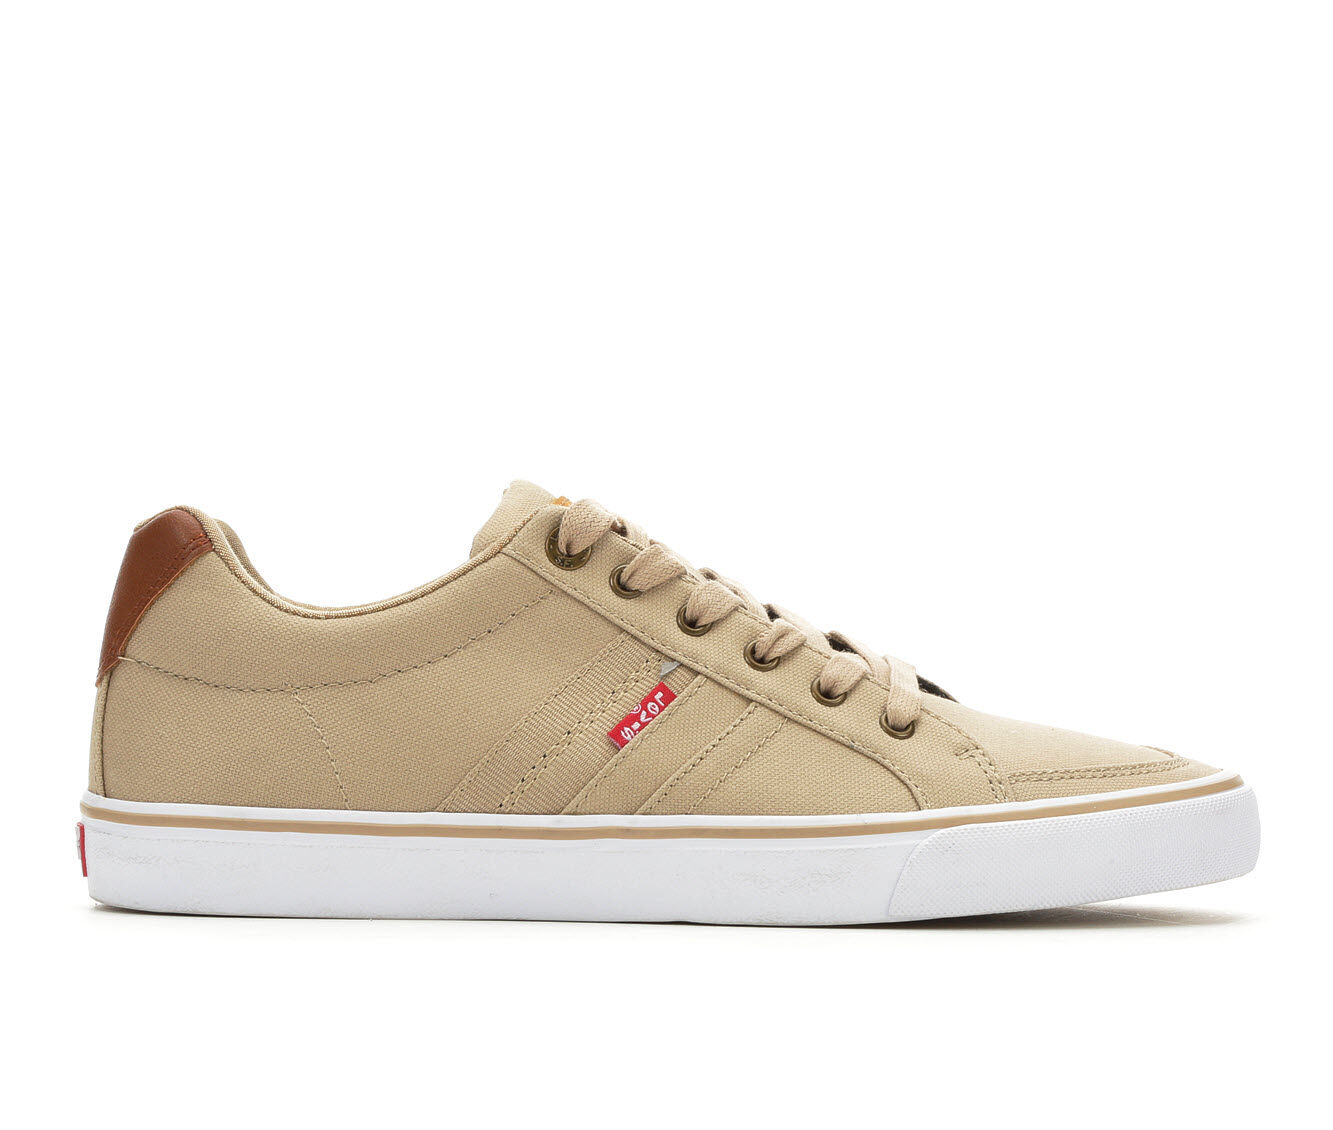 purchase authentic Men's Levis Turner CT Casual Canvas Sneakers Light Khaki